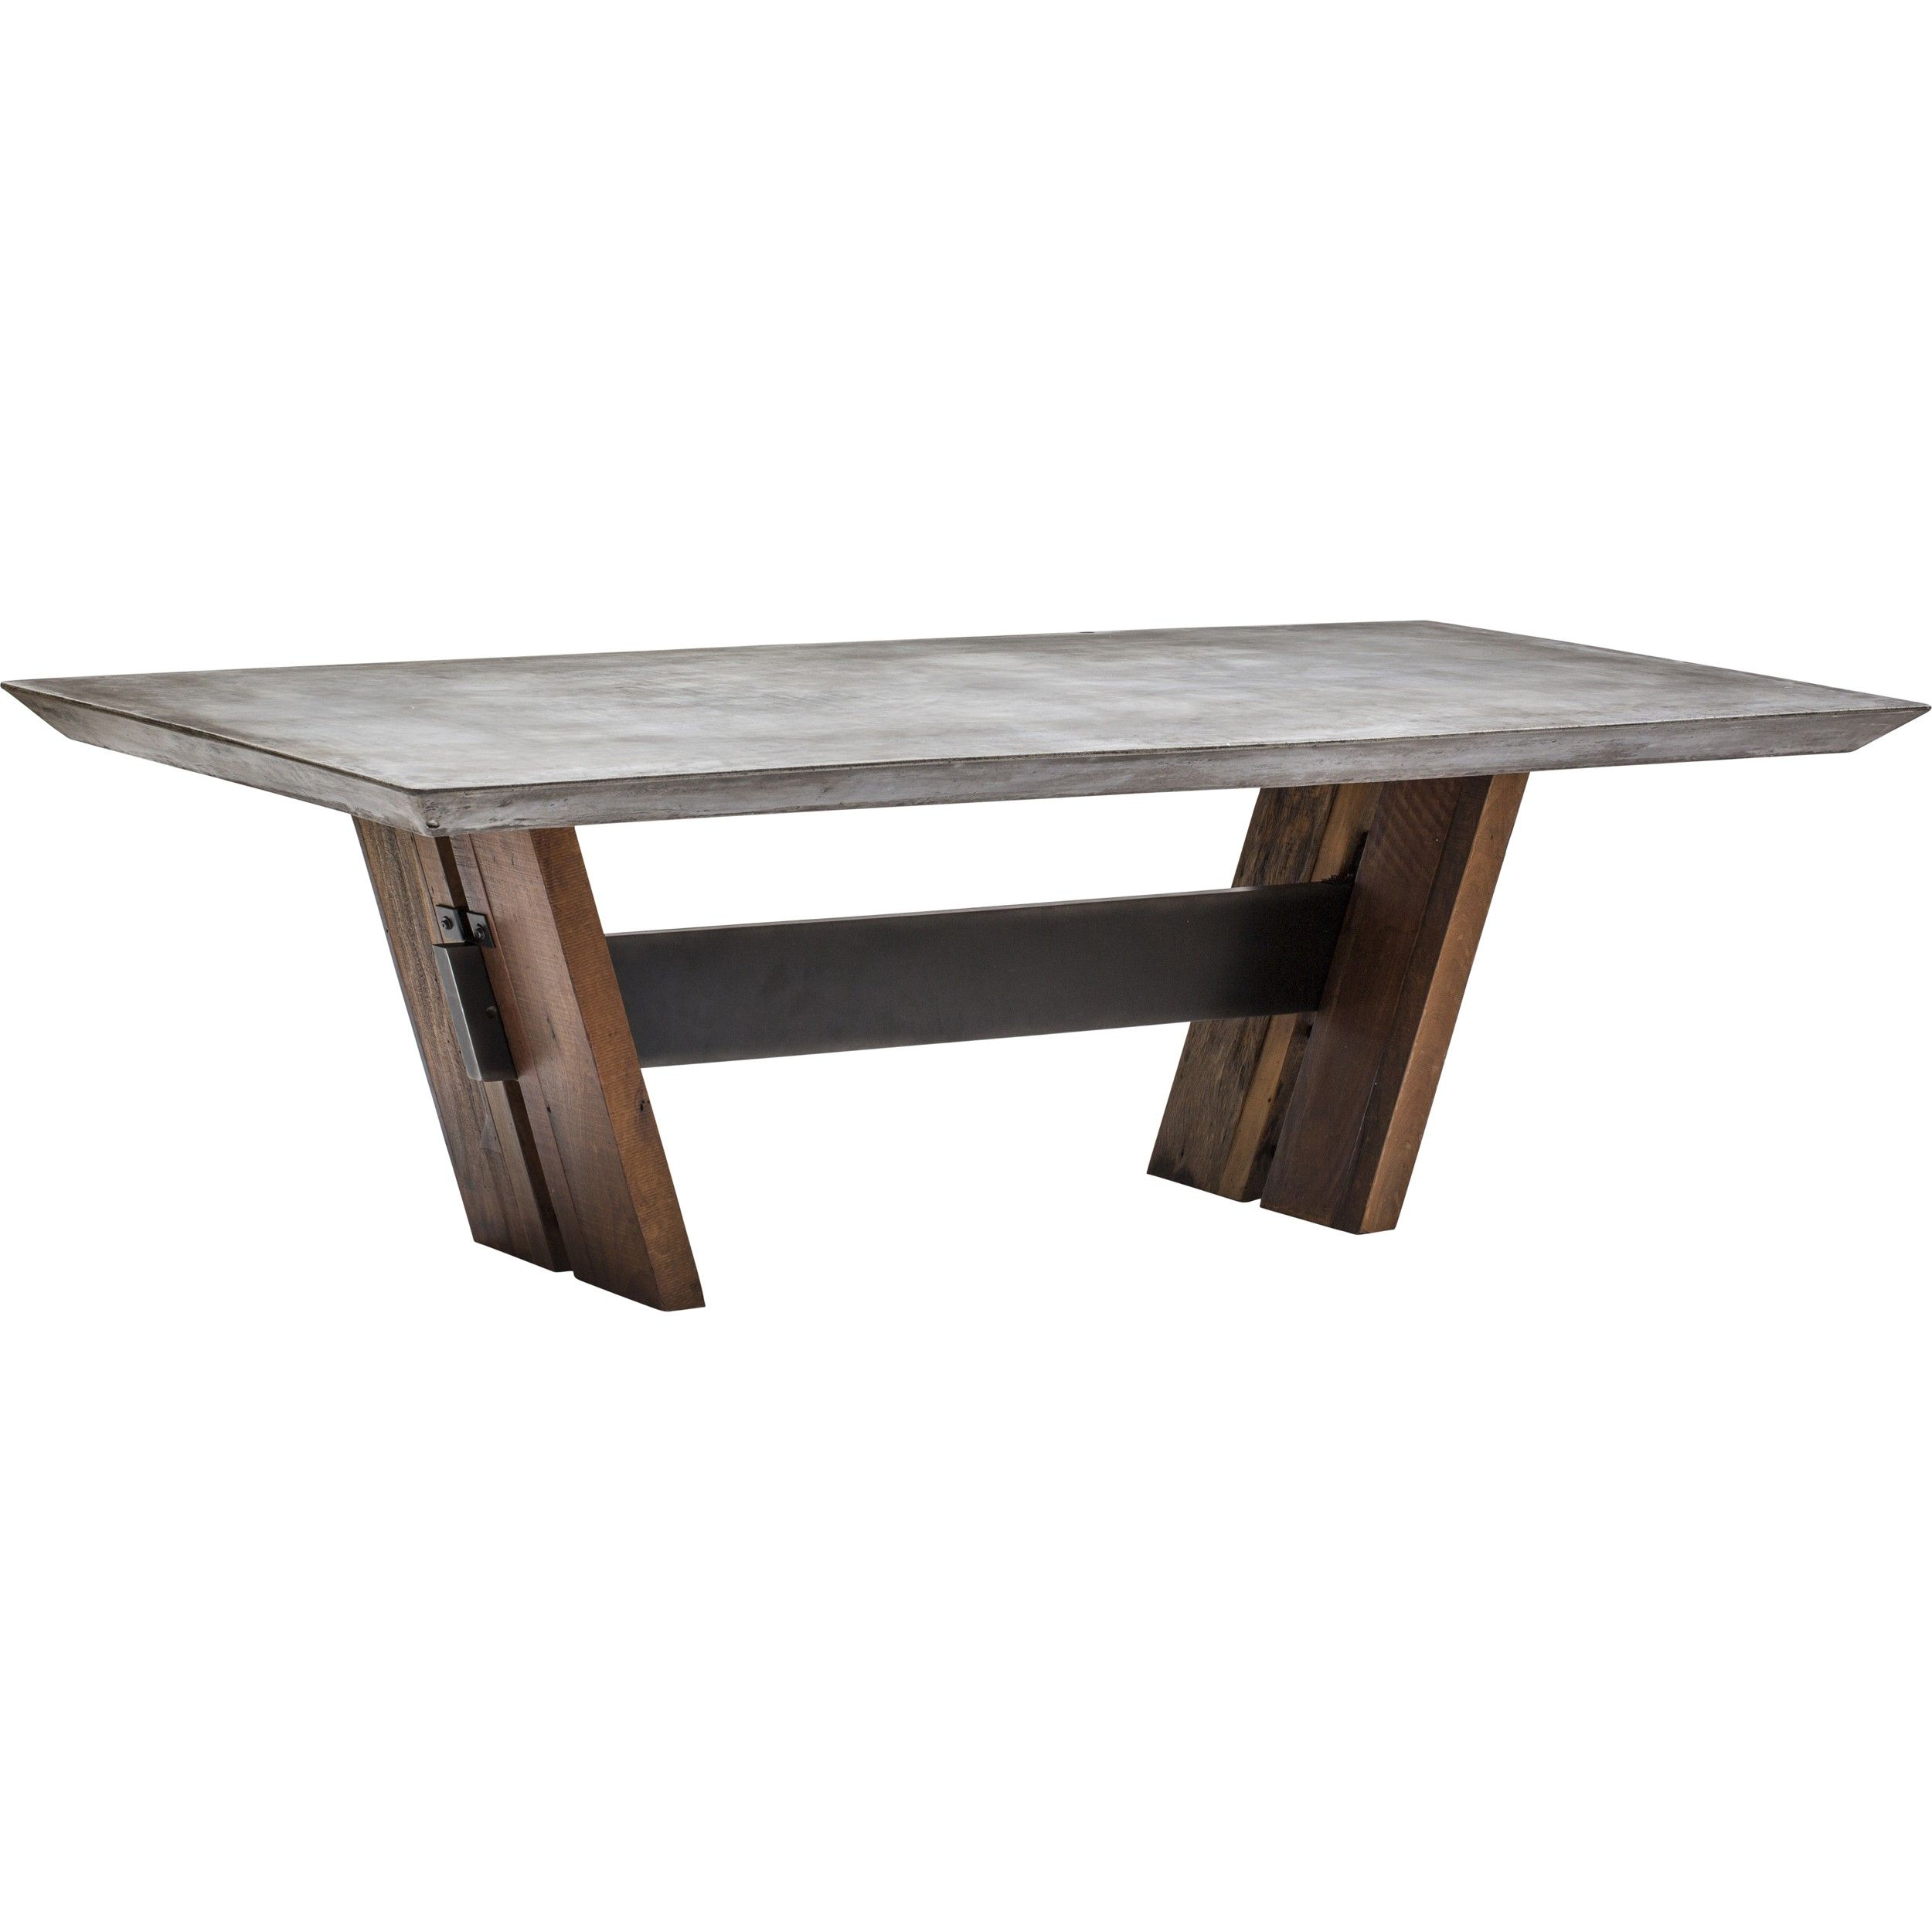 Bonham Dining Table $2,399.00